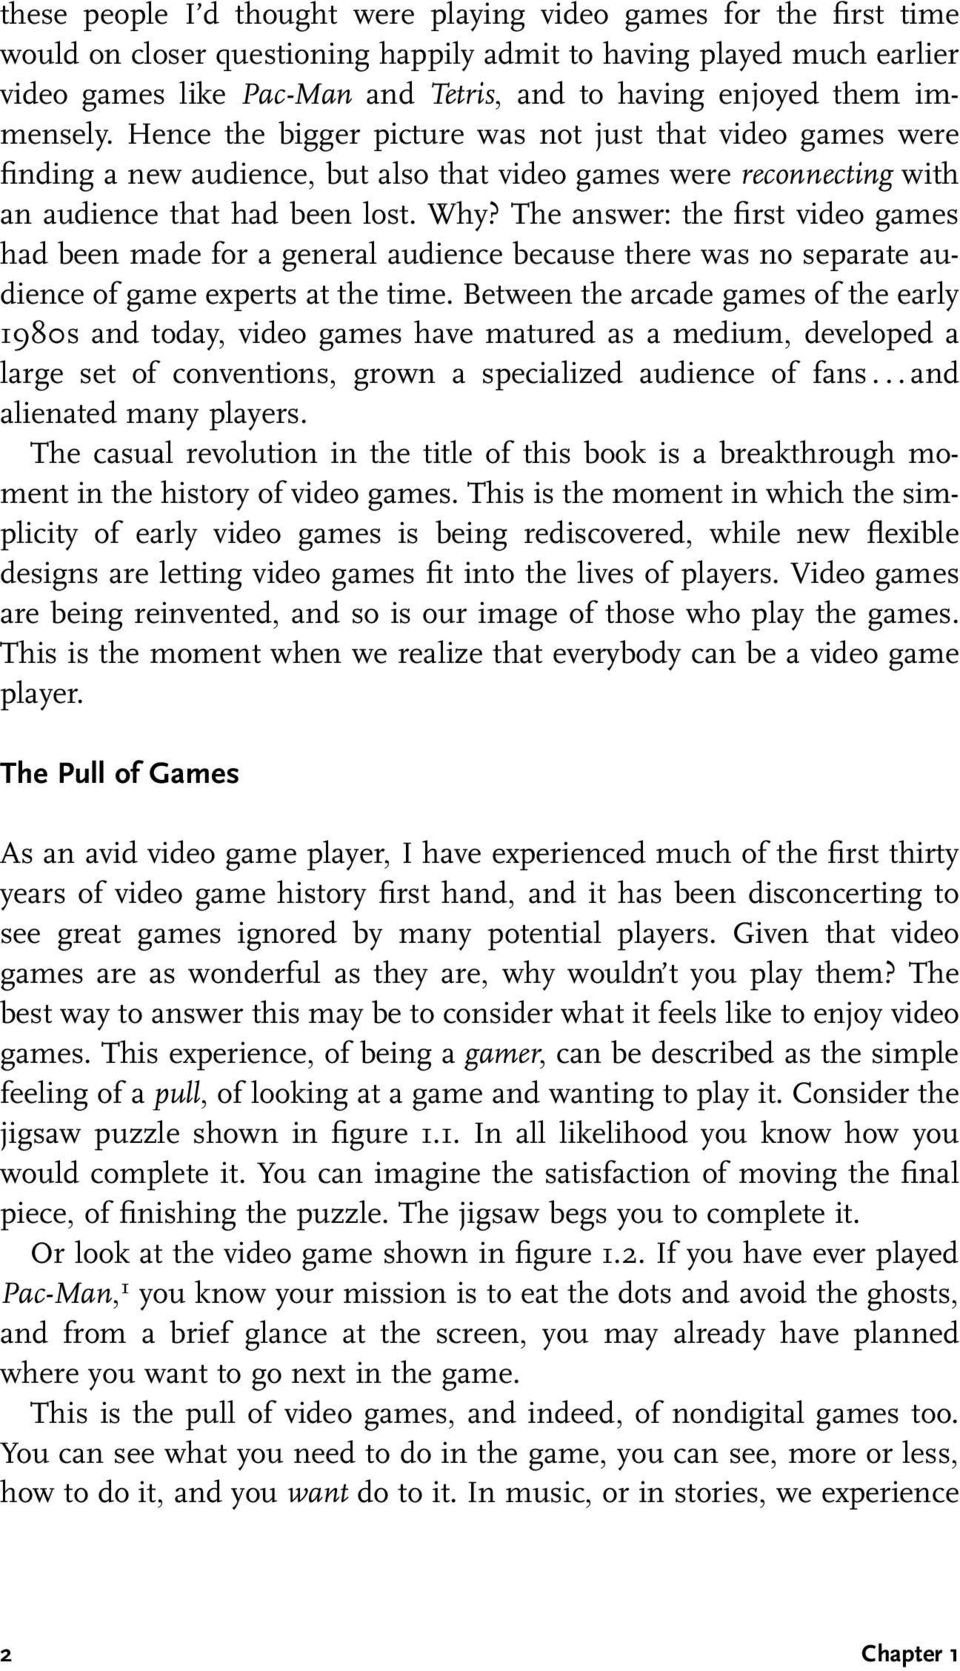 The answer: the first video games had been made for a general audience because there was no separate audience of game experts at the time.